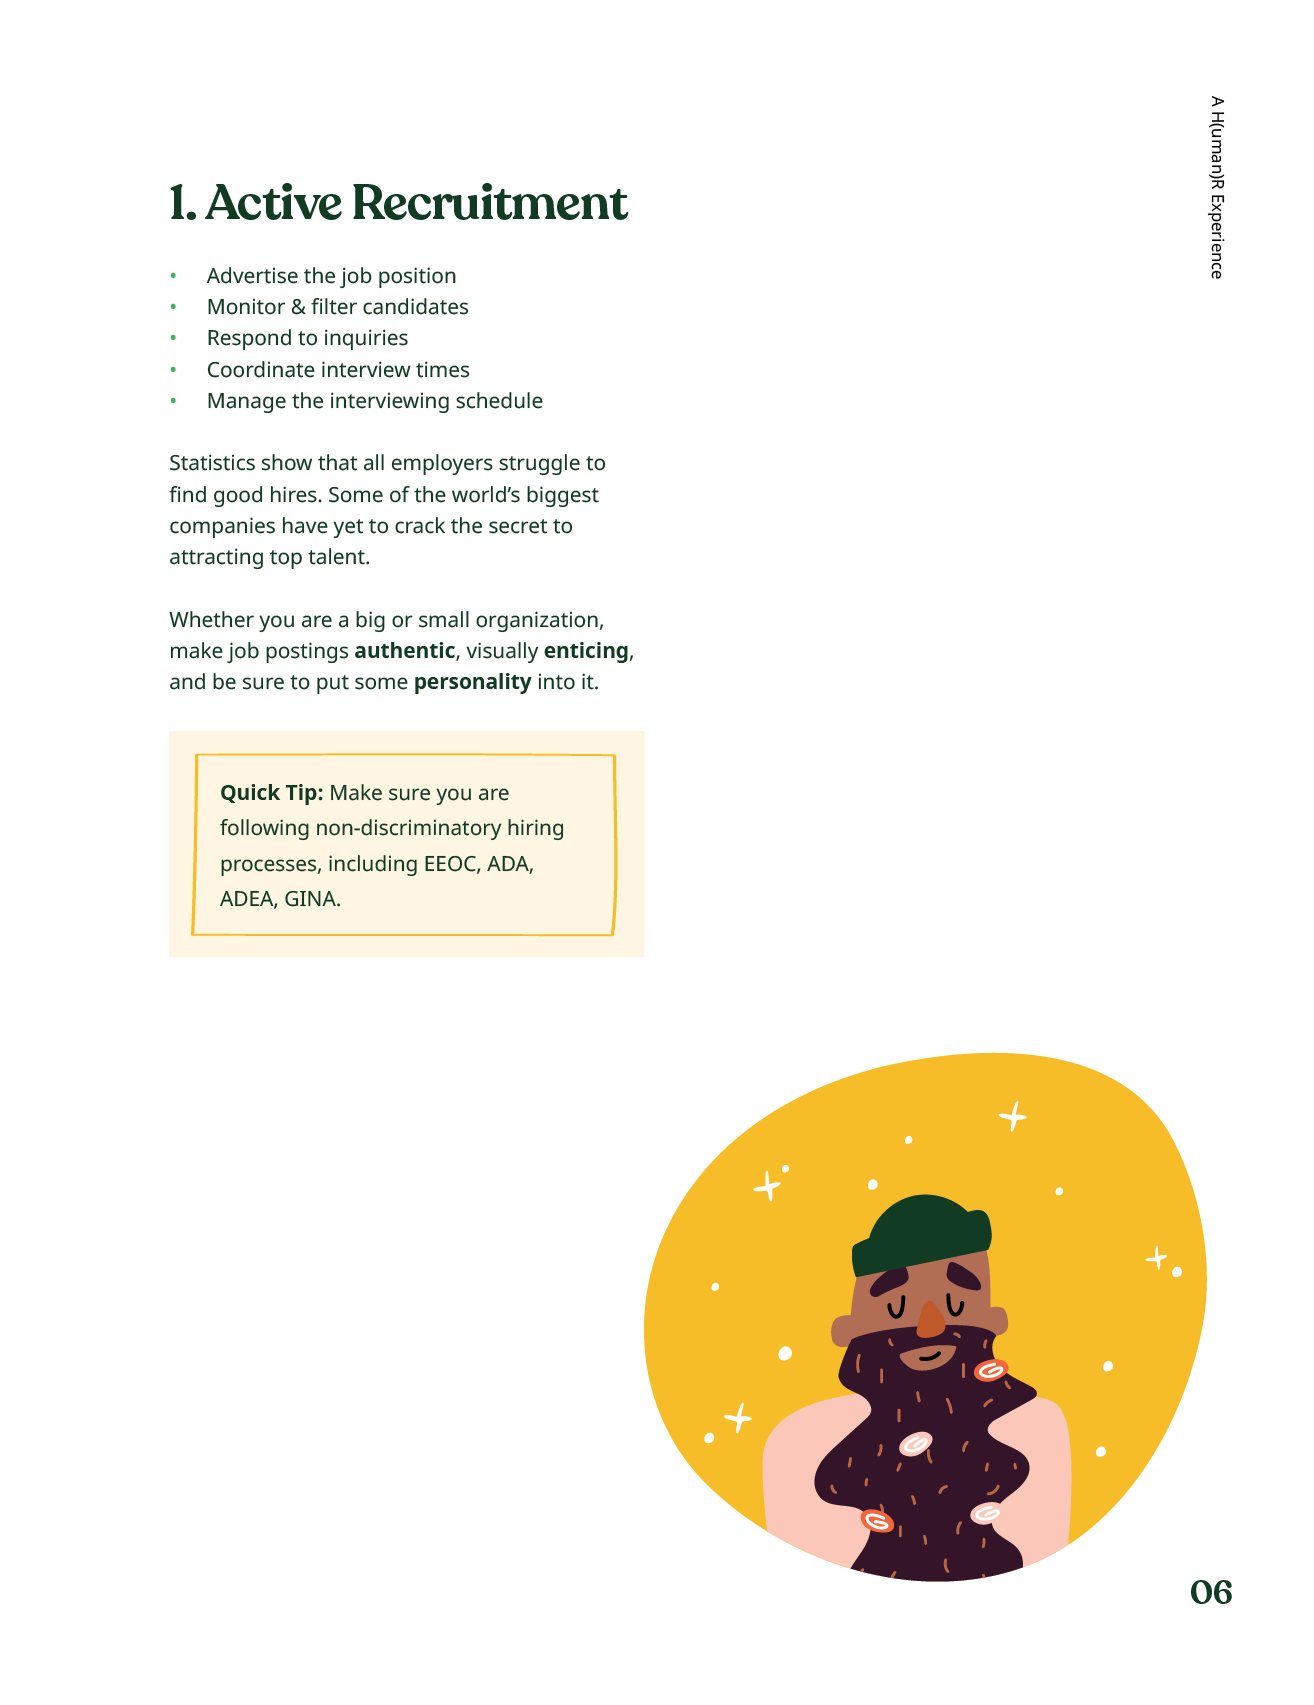 Ebook page about recruitment